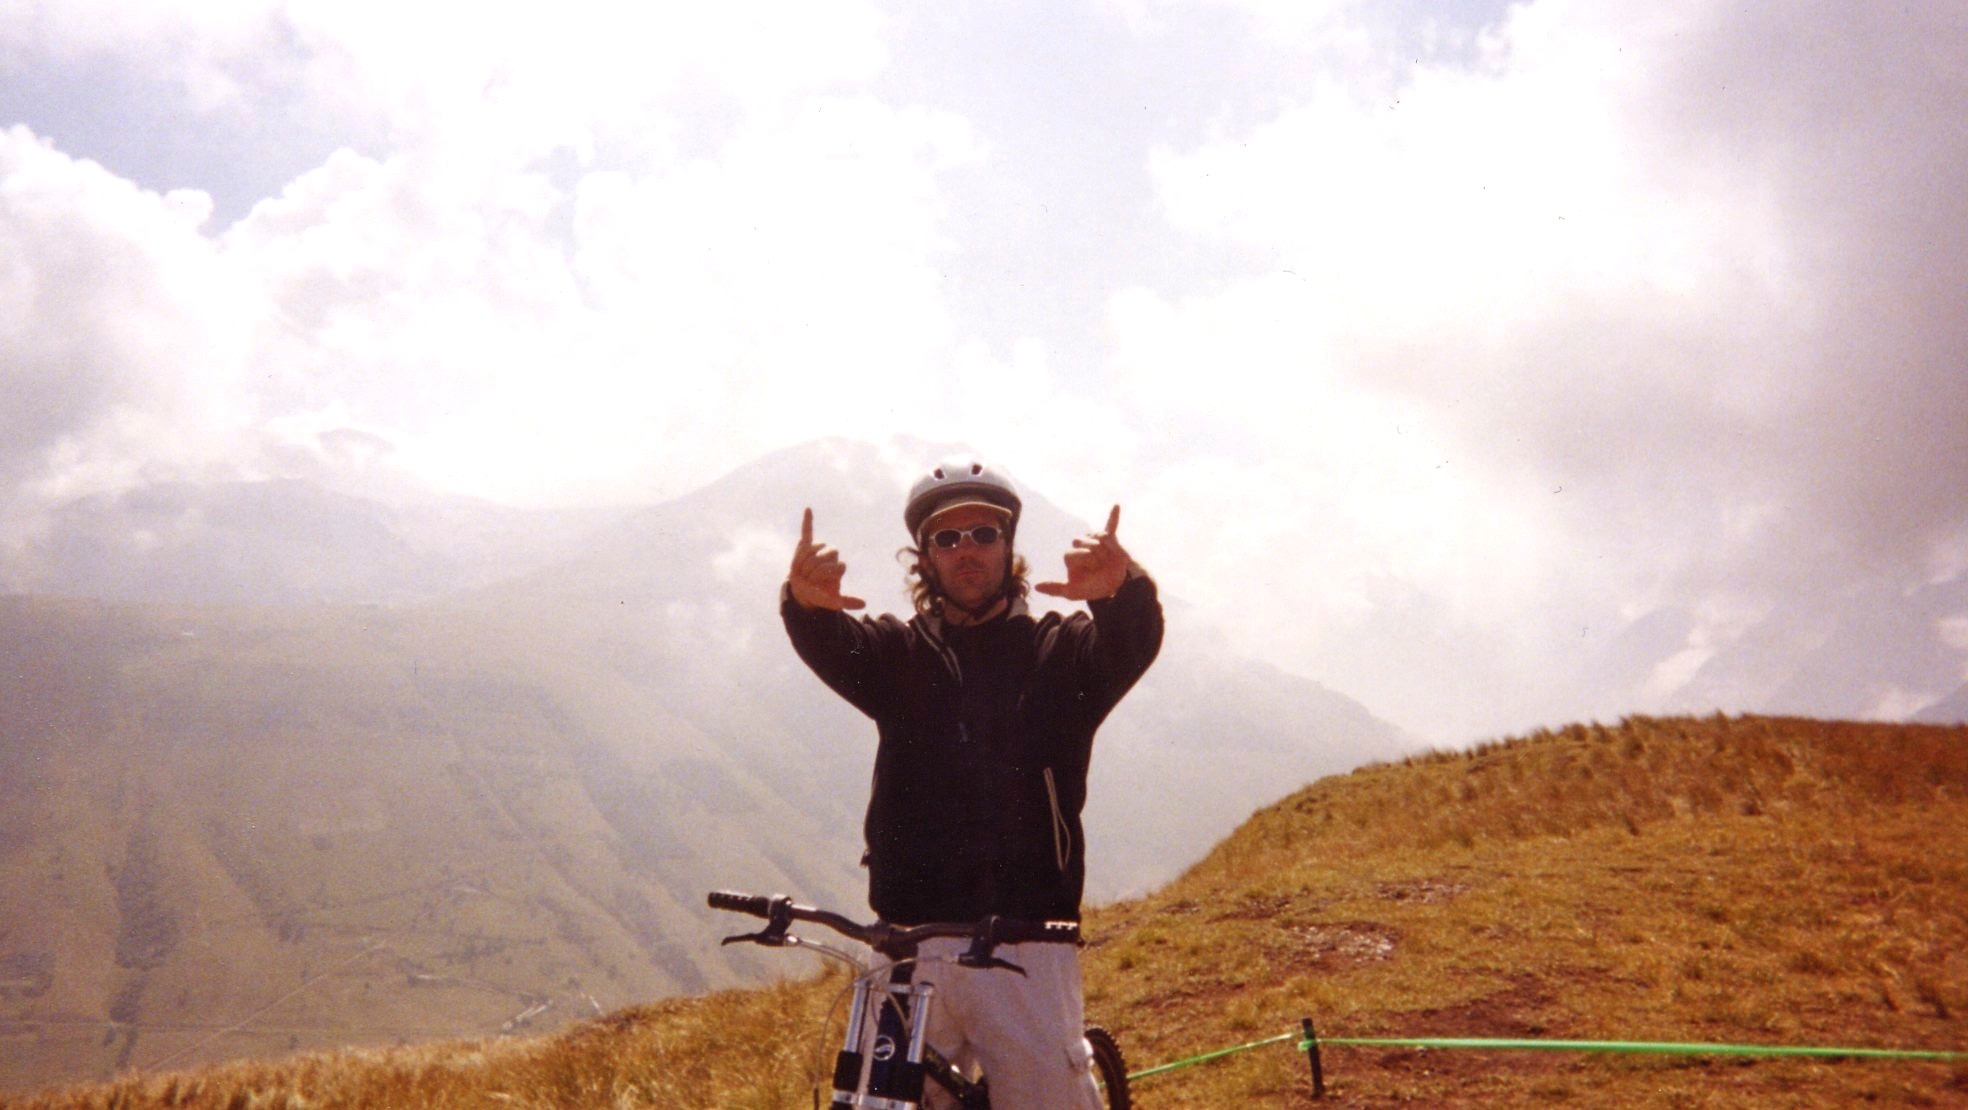 2000 in Les Deux Alps, France